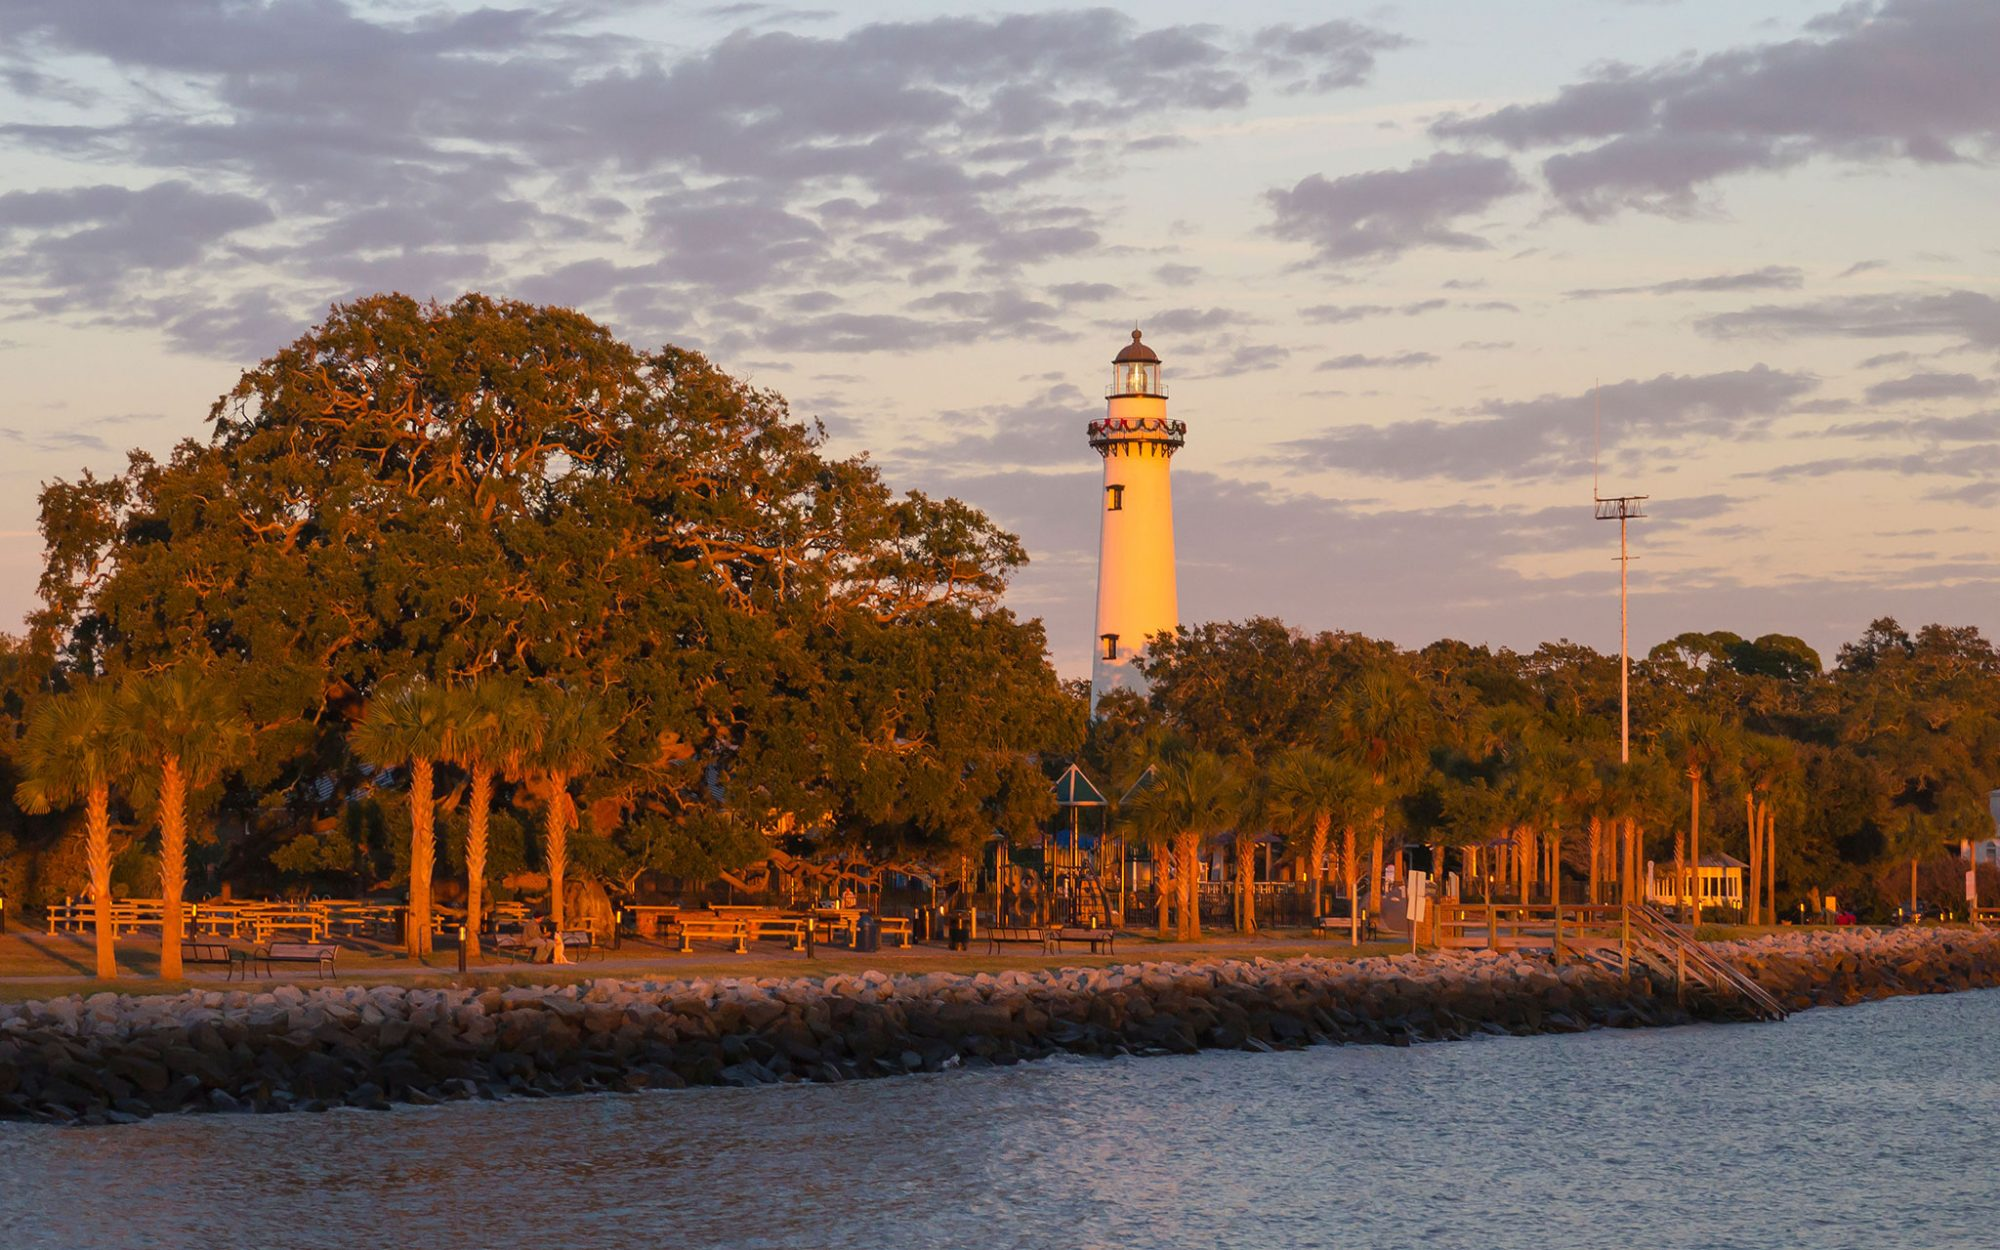 America's Most Romantic Towns: St. Simons